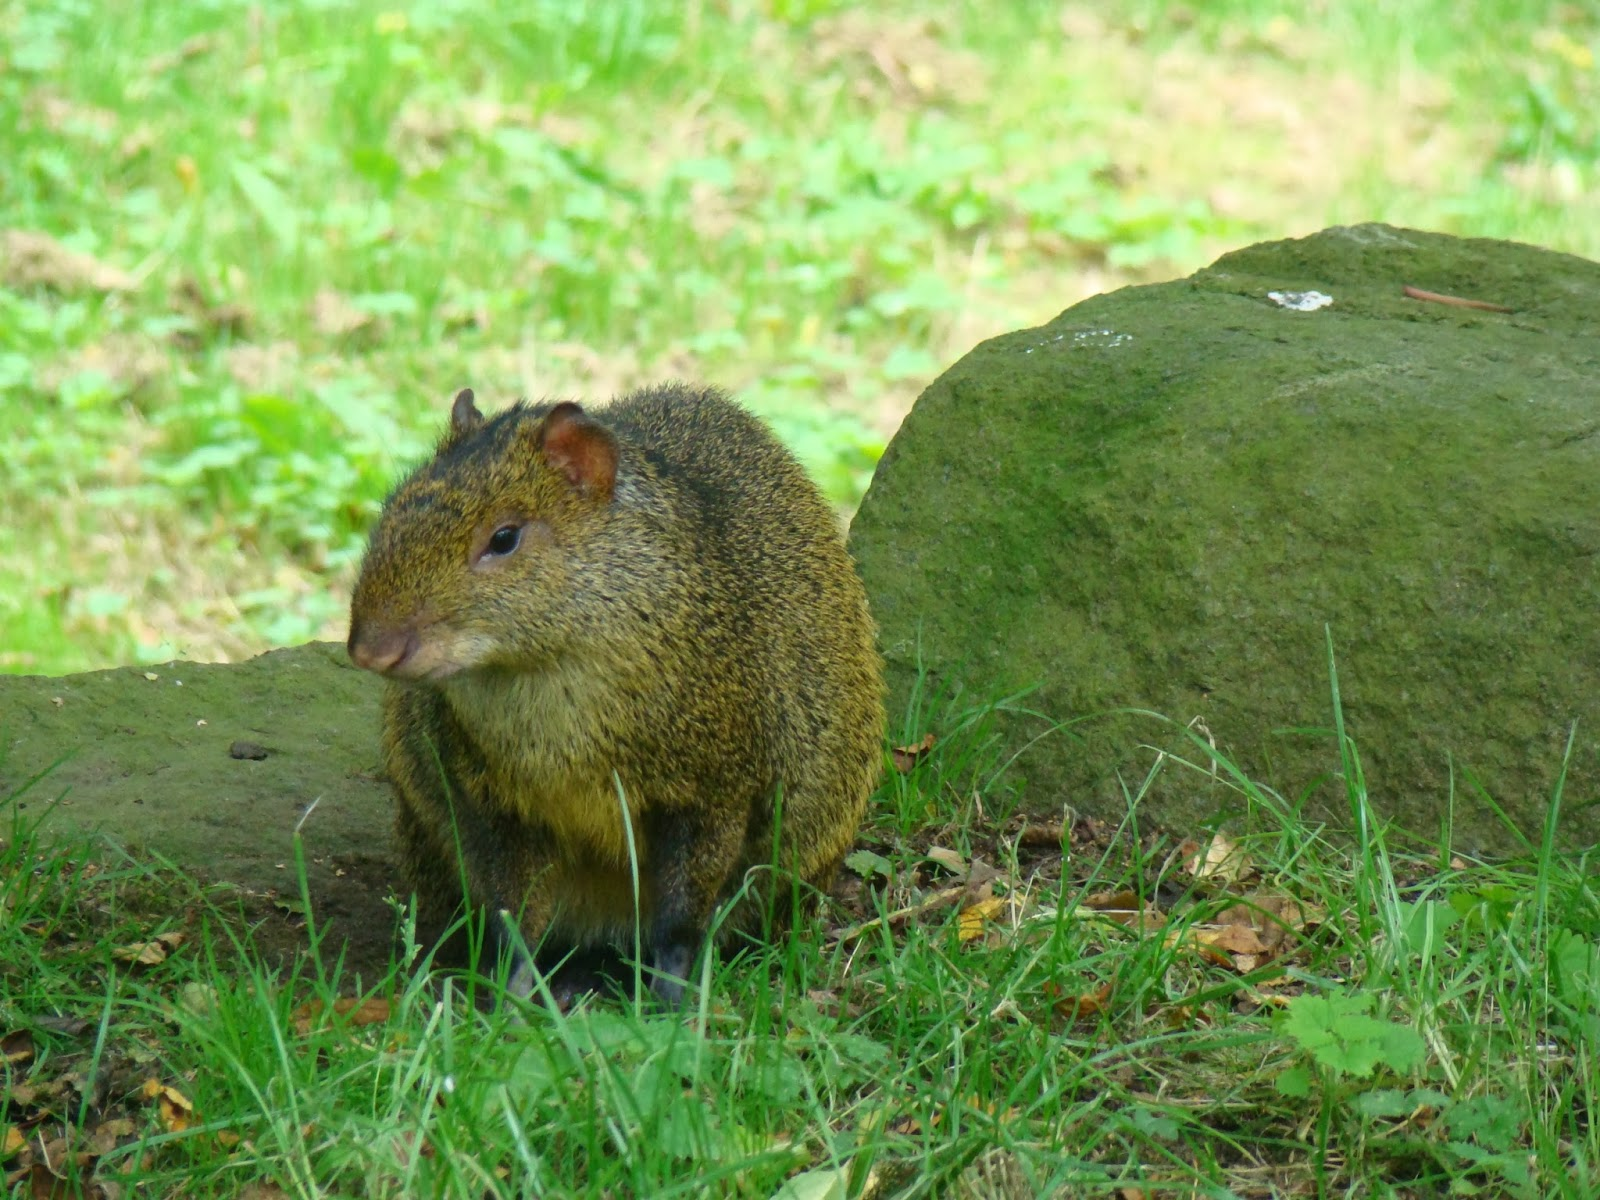 Agouti Animals | Amazing Facts & Latest Pictures | The ...